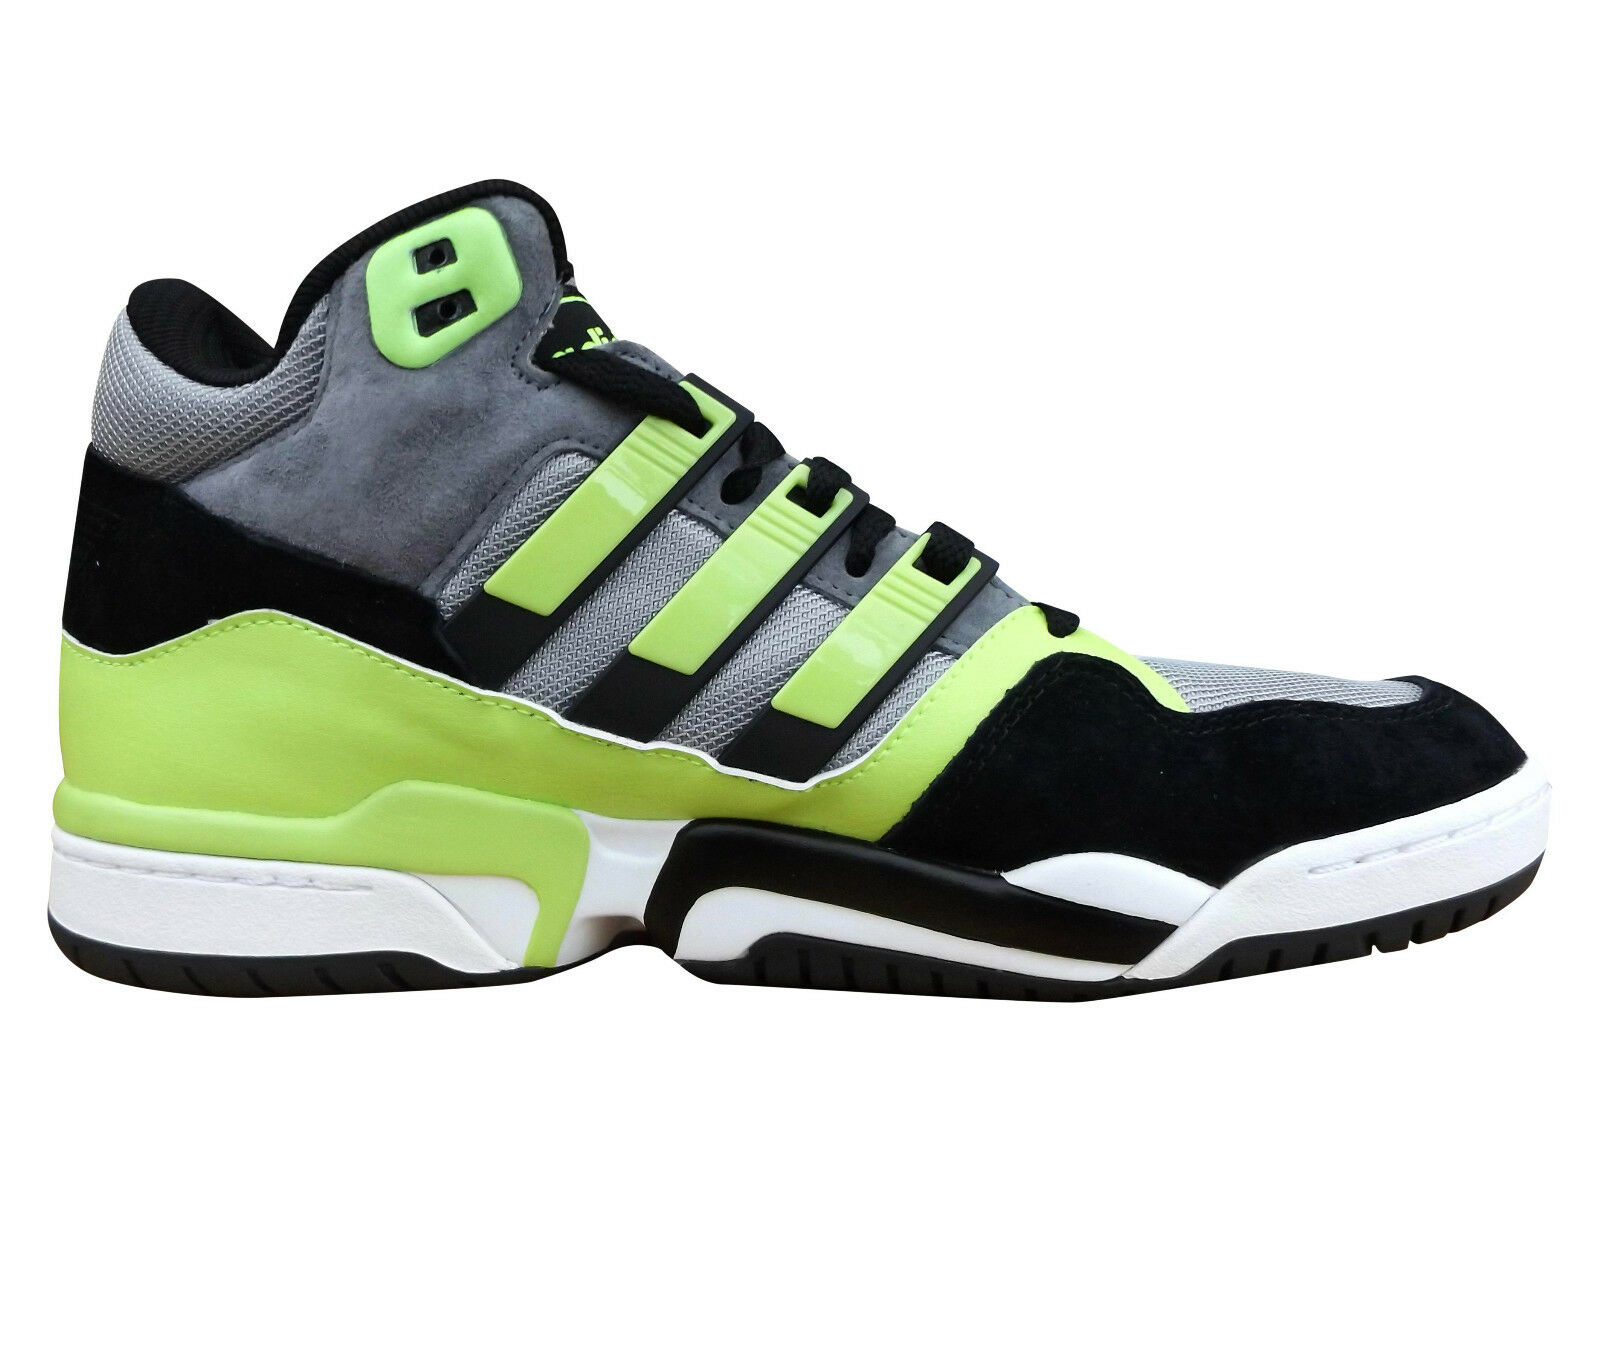 Adidas Herren Torsion original Torsion Herren 92 Turnschuhe Grau 352e68